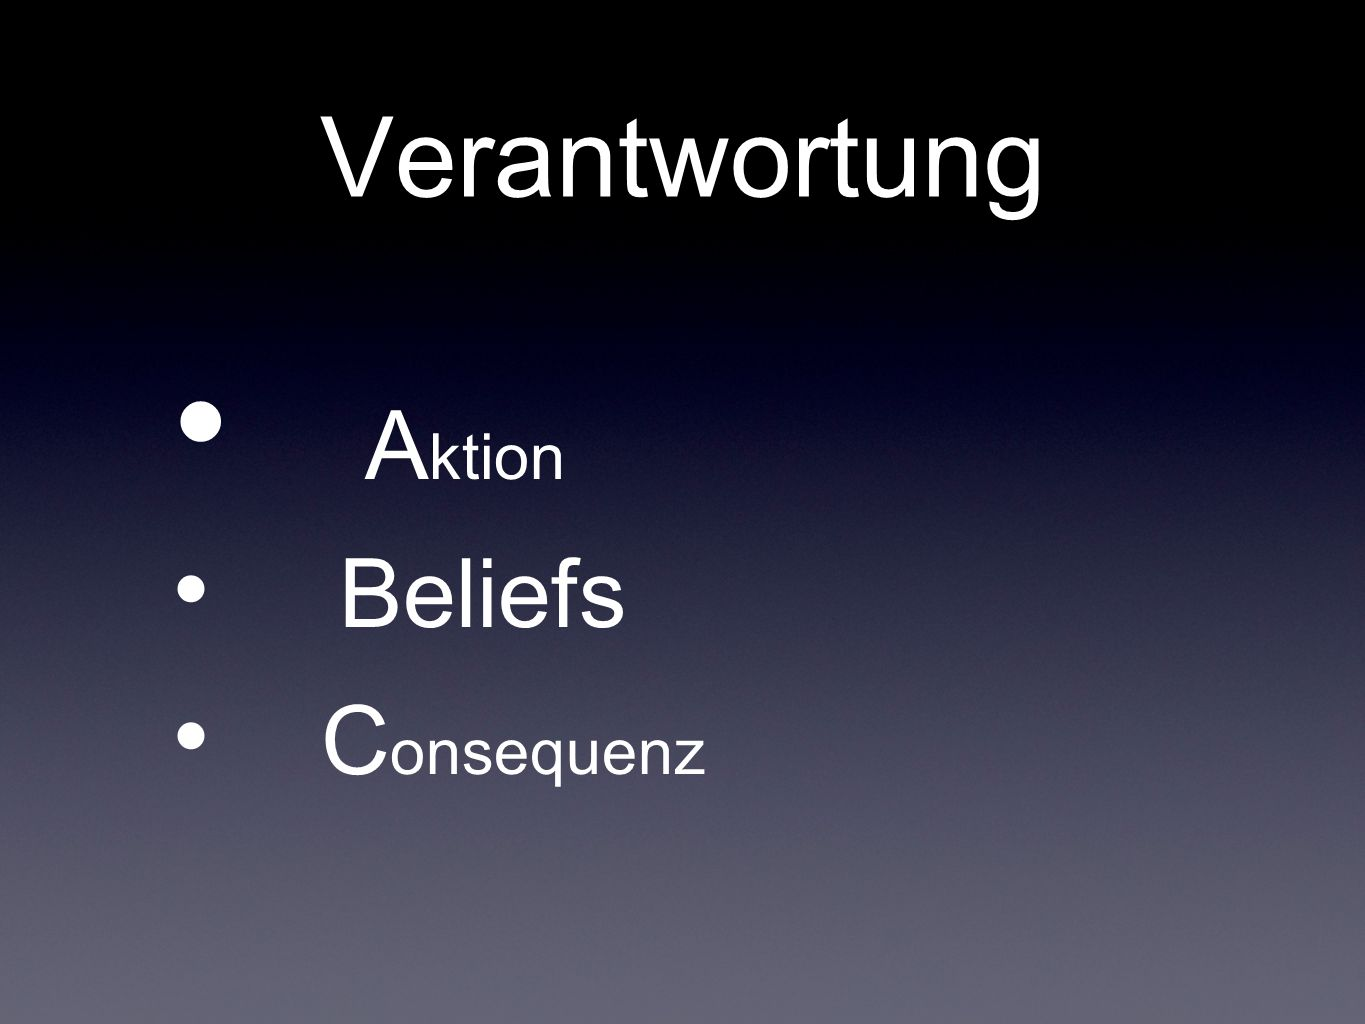 Verantwortung Aktion Beliefs Consequenz